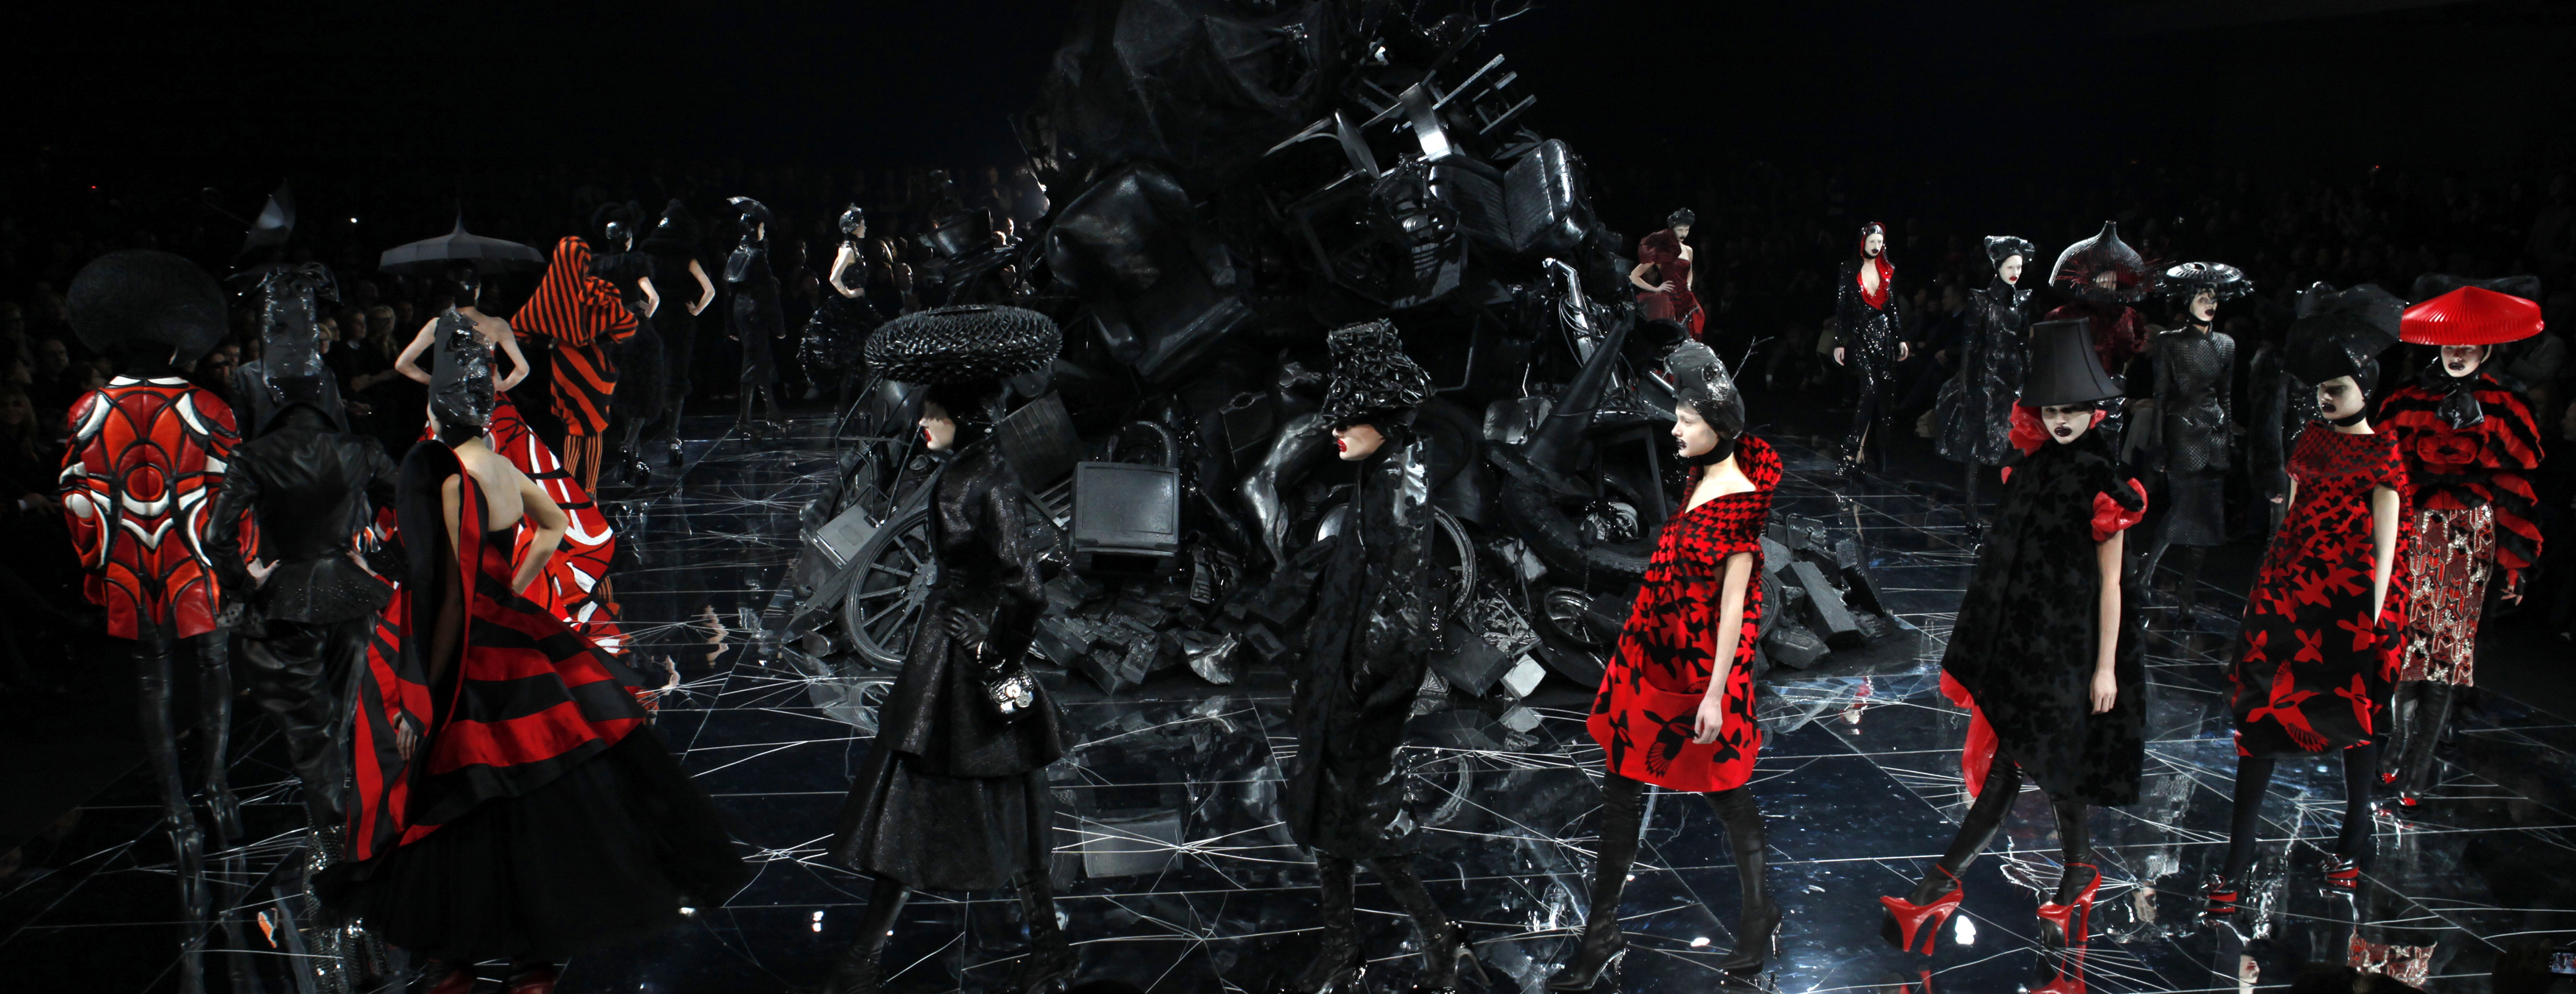 "Models present creations by British designer Alexander McQueen as part of his ""Horn of Plenty"" ready-to-wear women's collection during Paris Fashion Week on March 10, 2009. In the middle of the runway is a pile of garbage, including recycled props from past McQueen shows. Photo by Pascal Rossignol/Reuters"